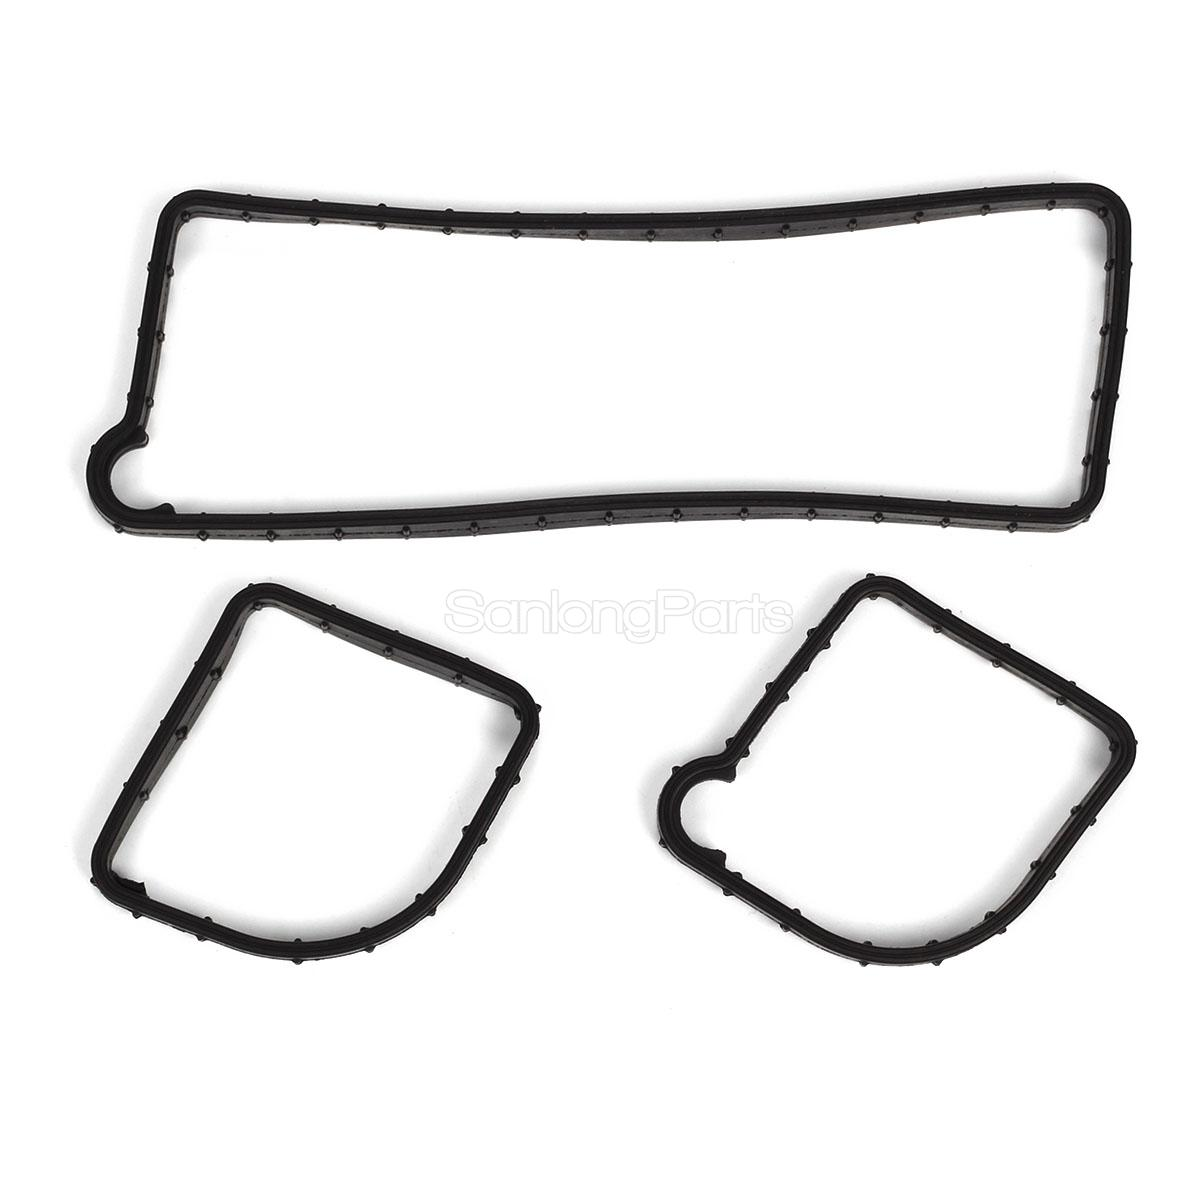 Fits 04-12 Ford Lincoln Mercury Mazda Valve Cover Gasket